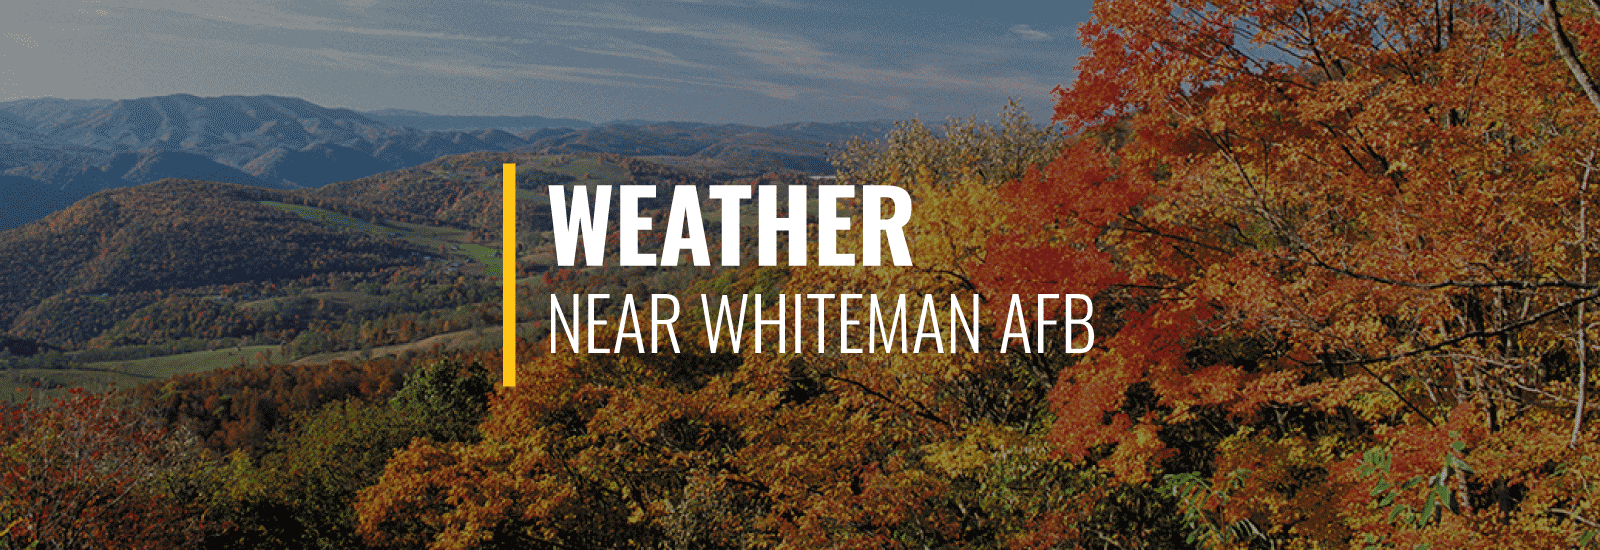 Whiteman AFB Weather